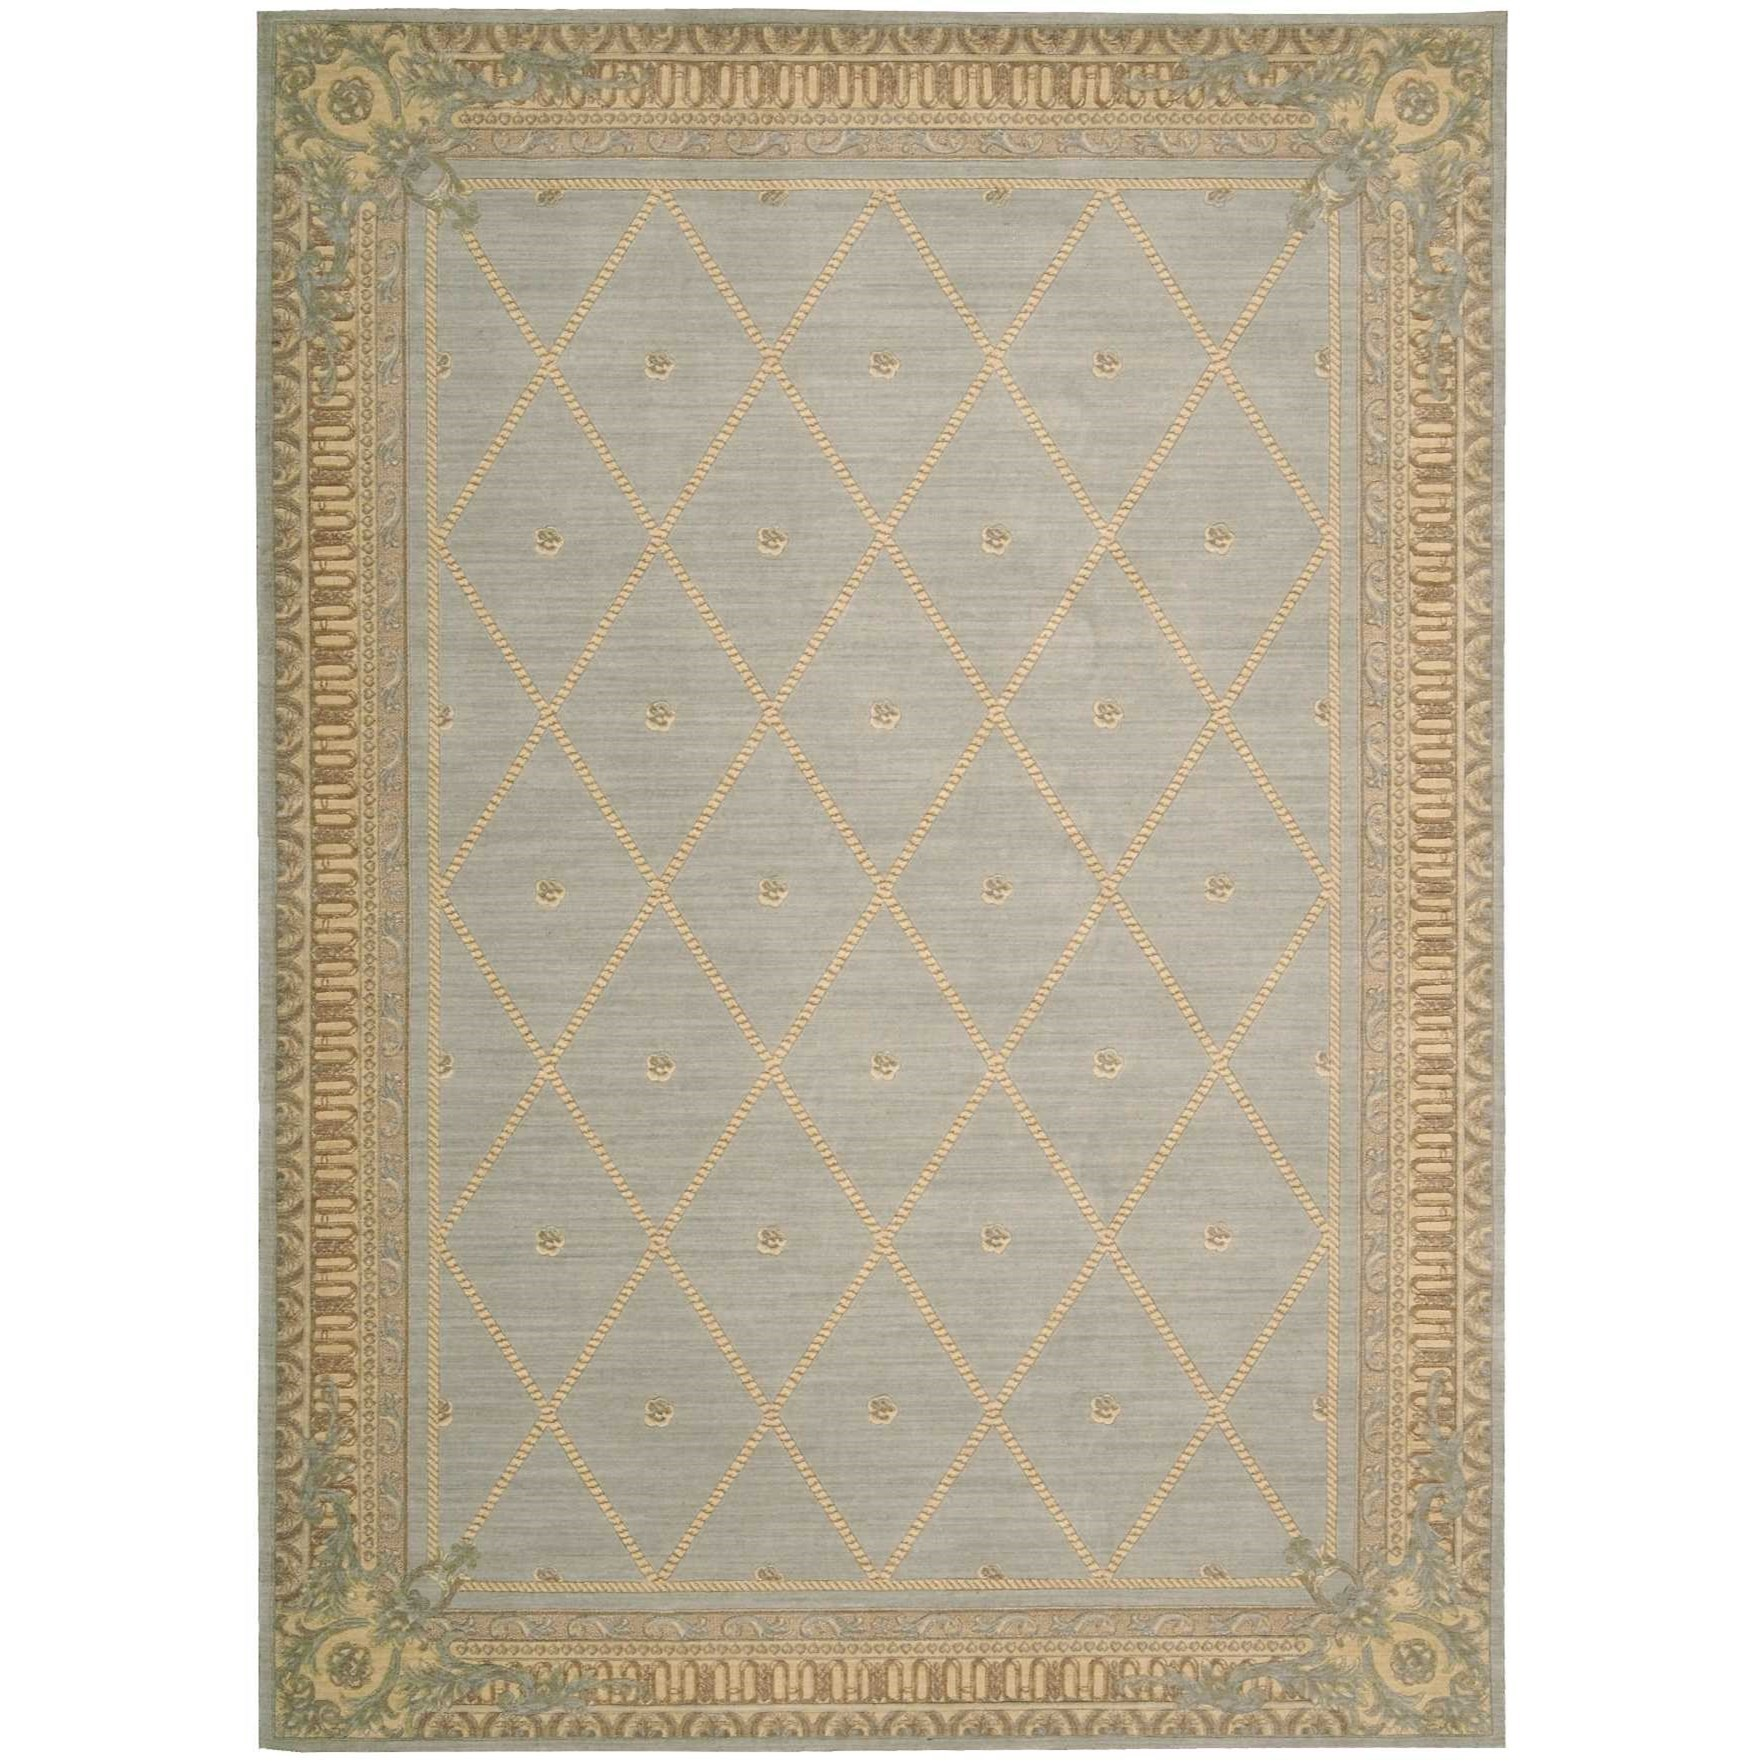 "Ashton House 7'9"" x 10'10"" Surf Rectangle Rug by Nourison at Sprintz Furniture"